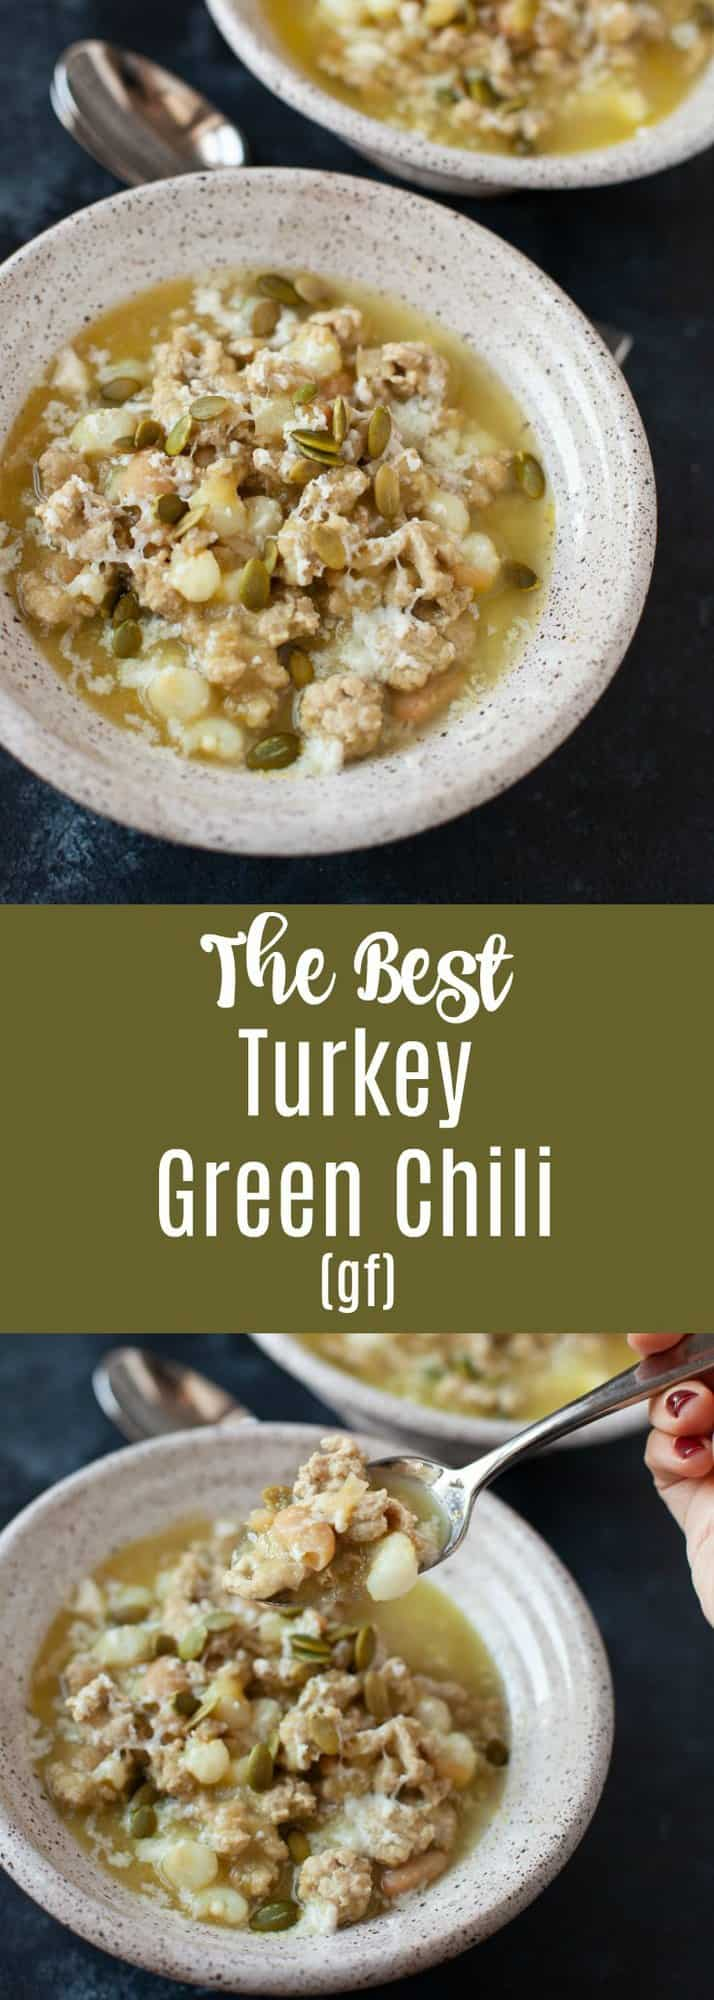 Spicy, warming, and satisfying, this turkey green chili is perfect for cooler weather. It's fantastic for leftovers, and makes for an easy, healthy meal to eat throughout a busy week. #chili #turkey #greenchili #gf #glutenfree